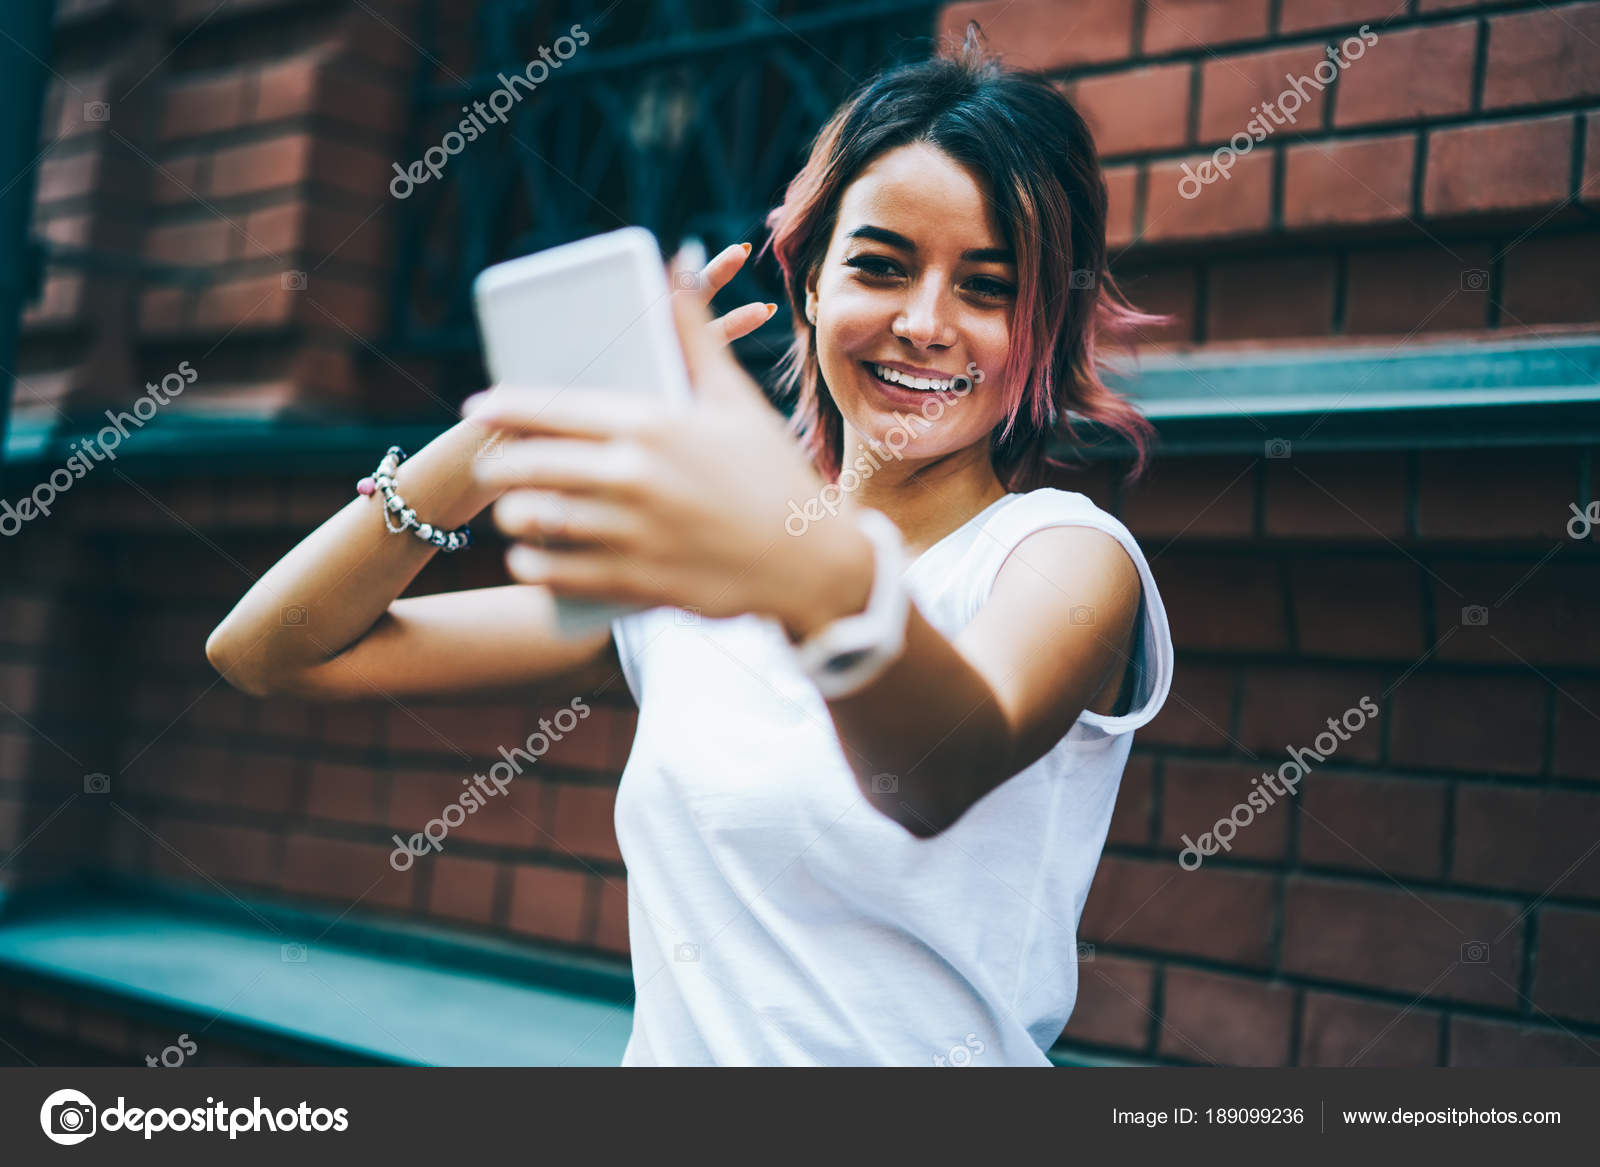 Funny Young Woman Short Haircut Making Selfie Photo Modern